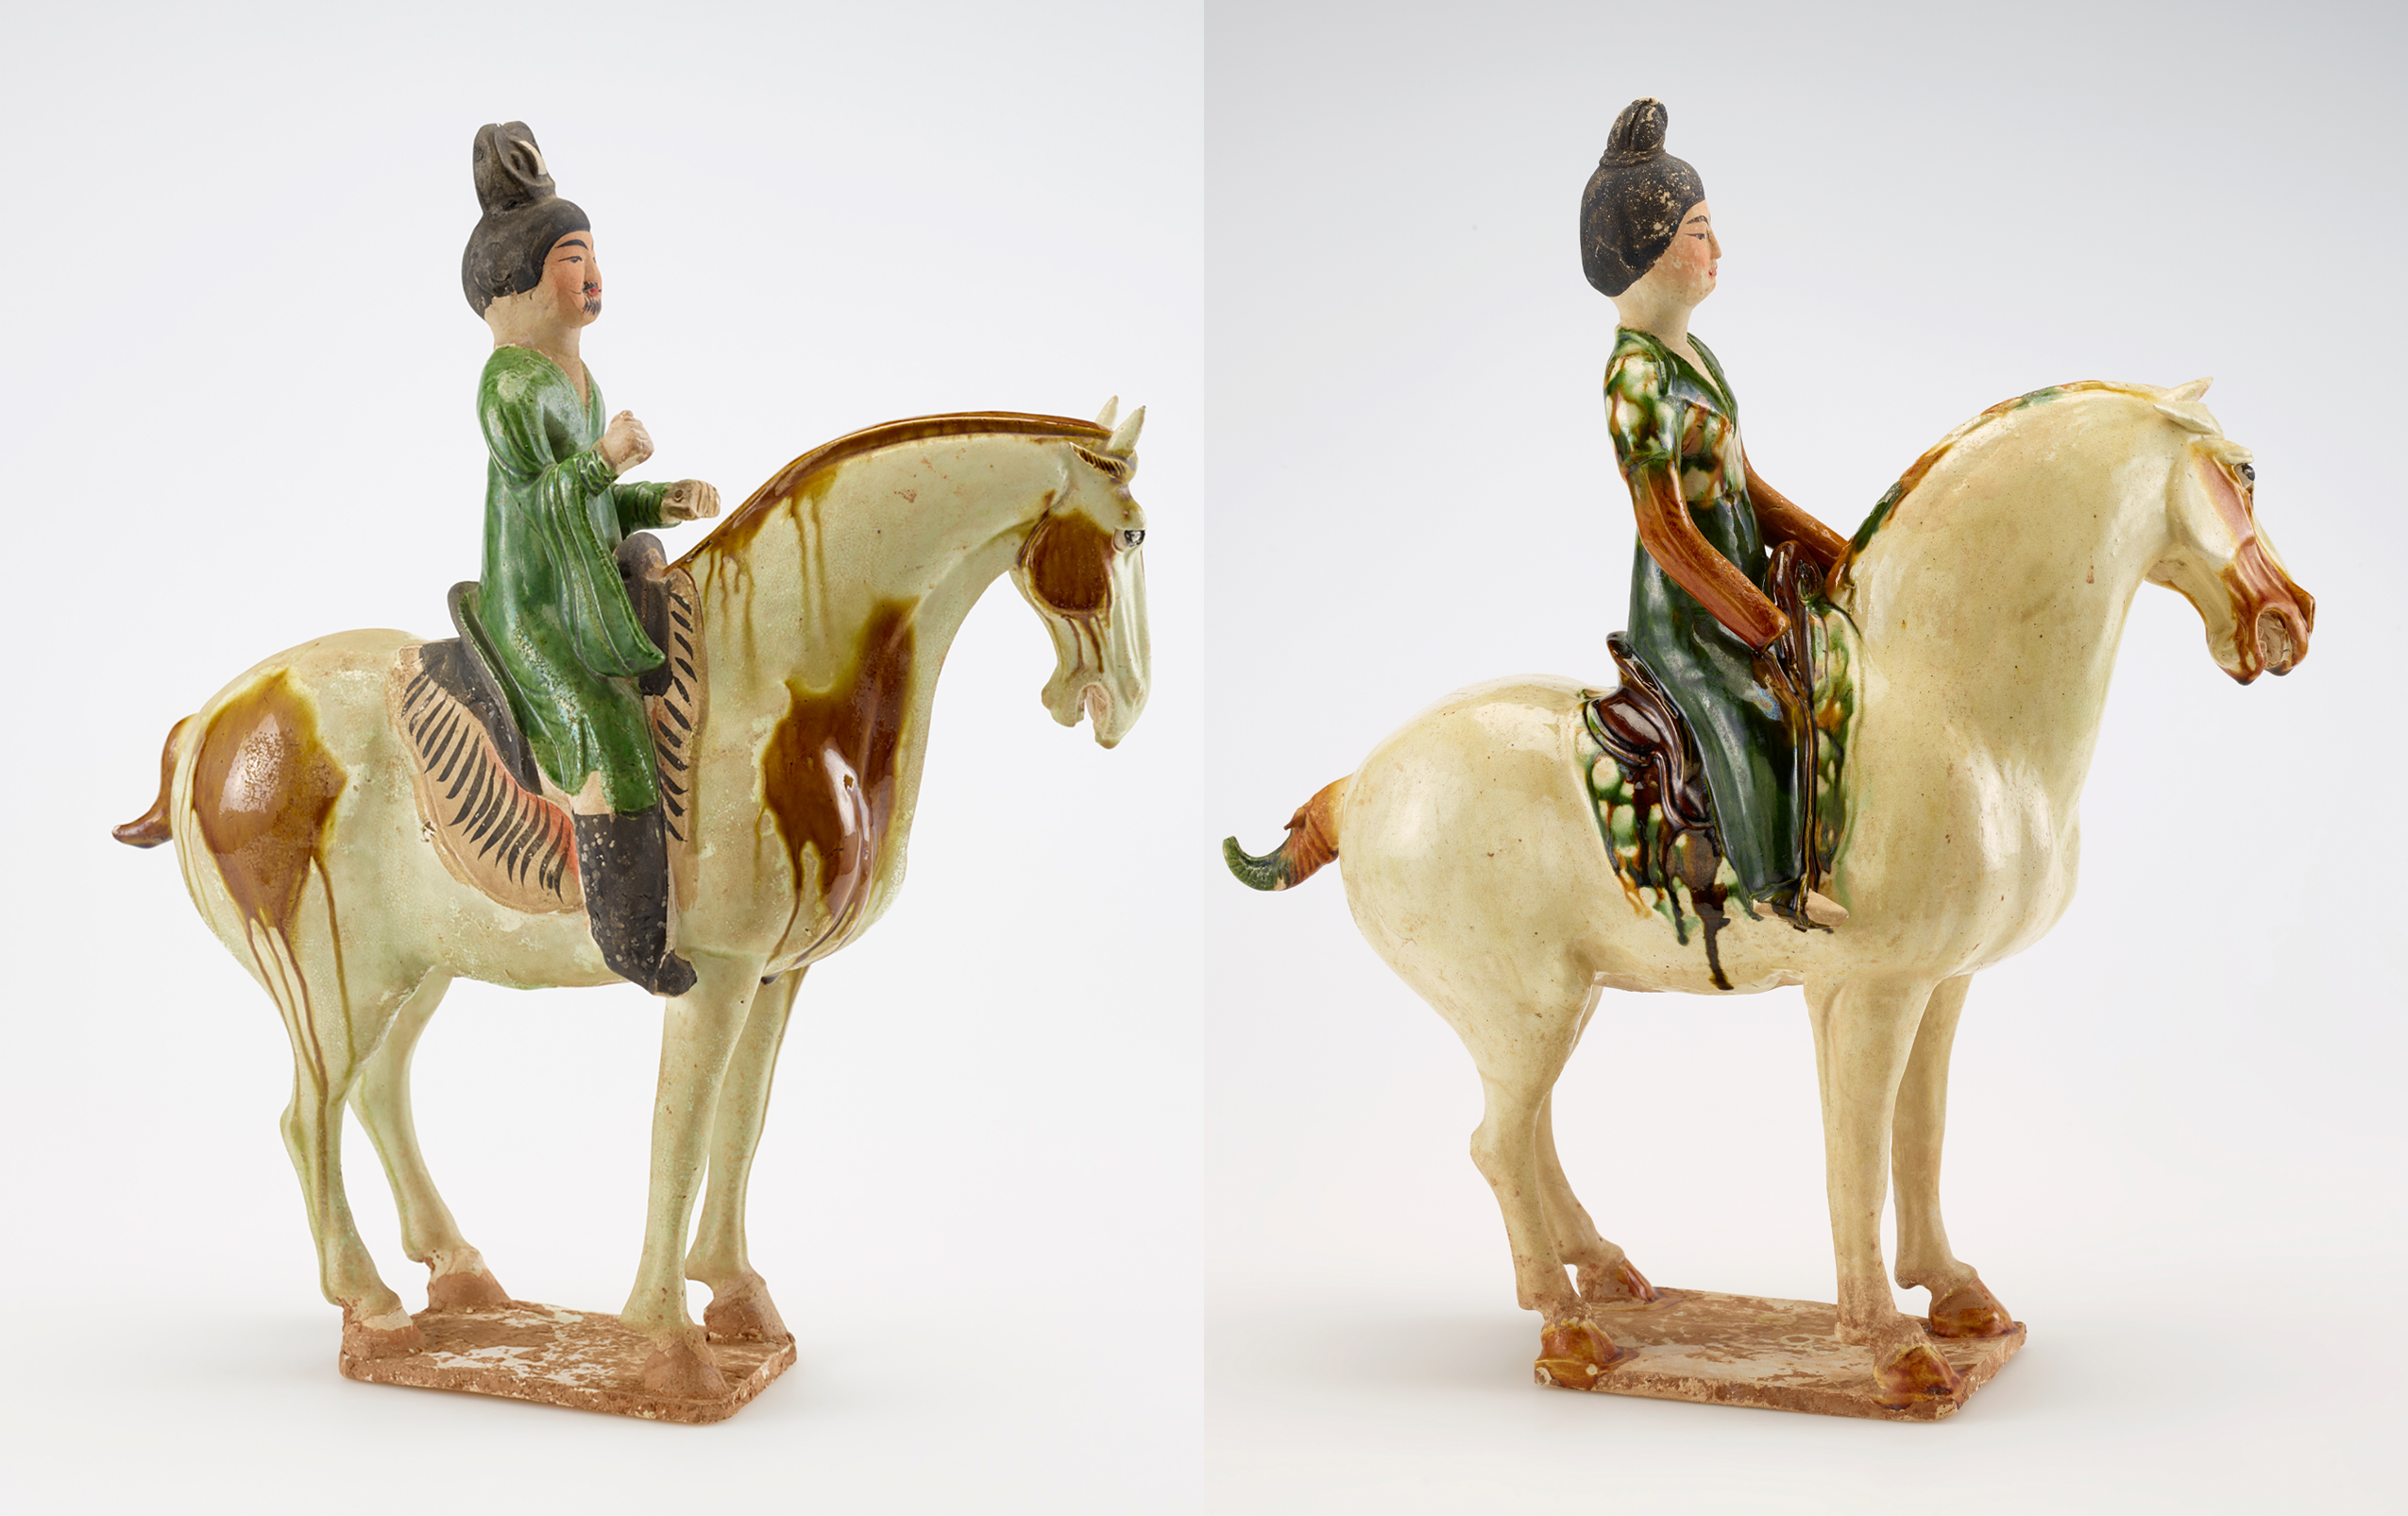 statues of a man and a woman on horseback